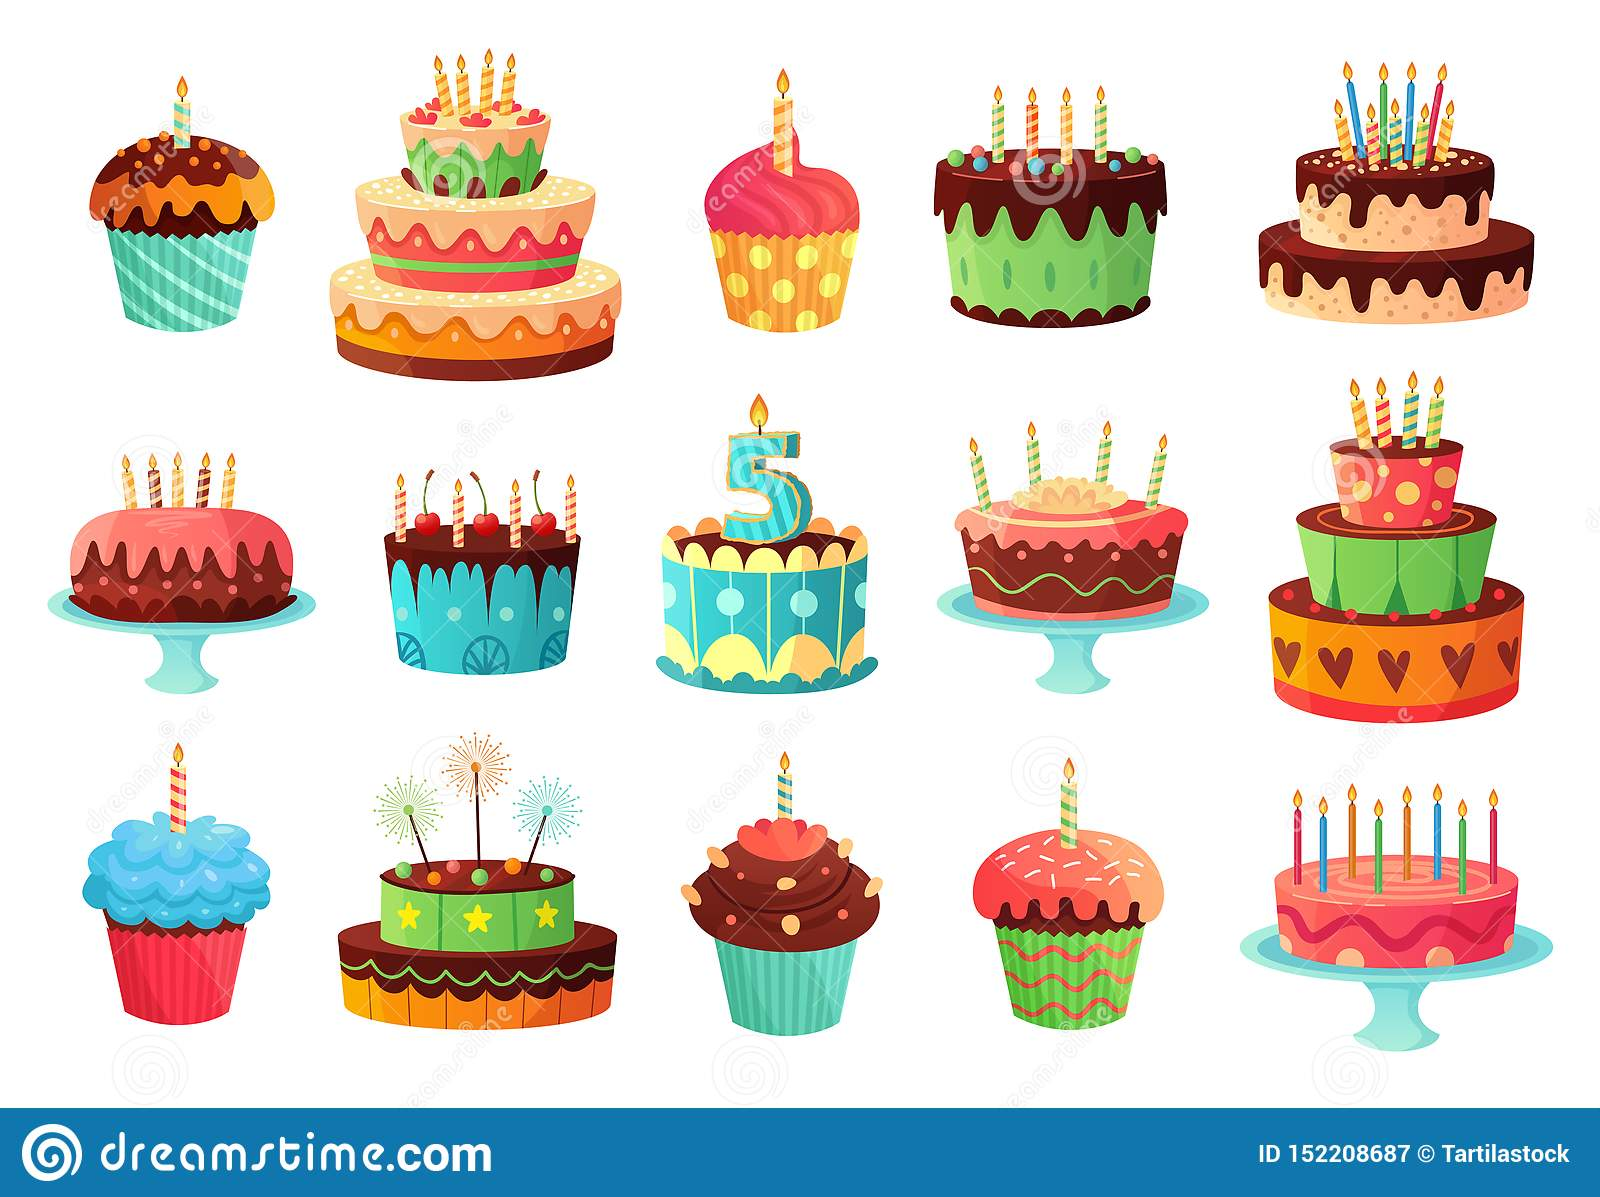 Pleasant Cartoon Birthday Party Cakes Sweet Baked Cake Colourful Cupcakes Funny Birthday Cards Online Elaedamsfinfo